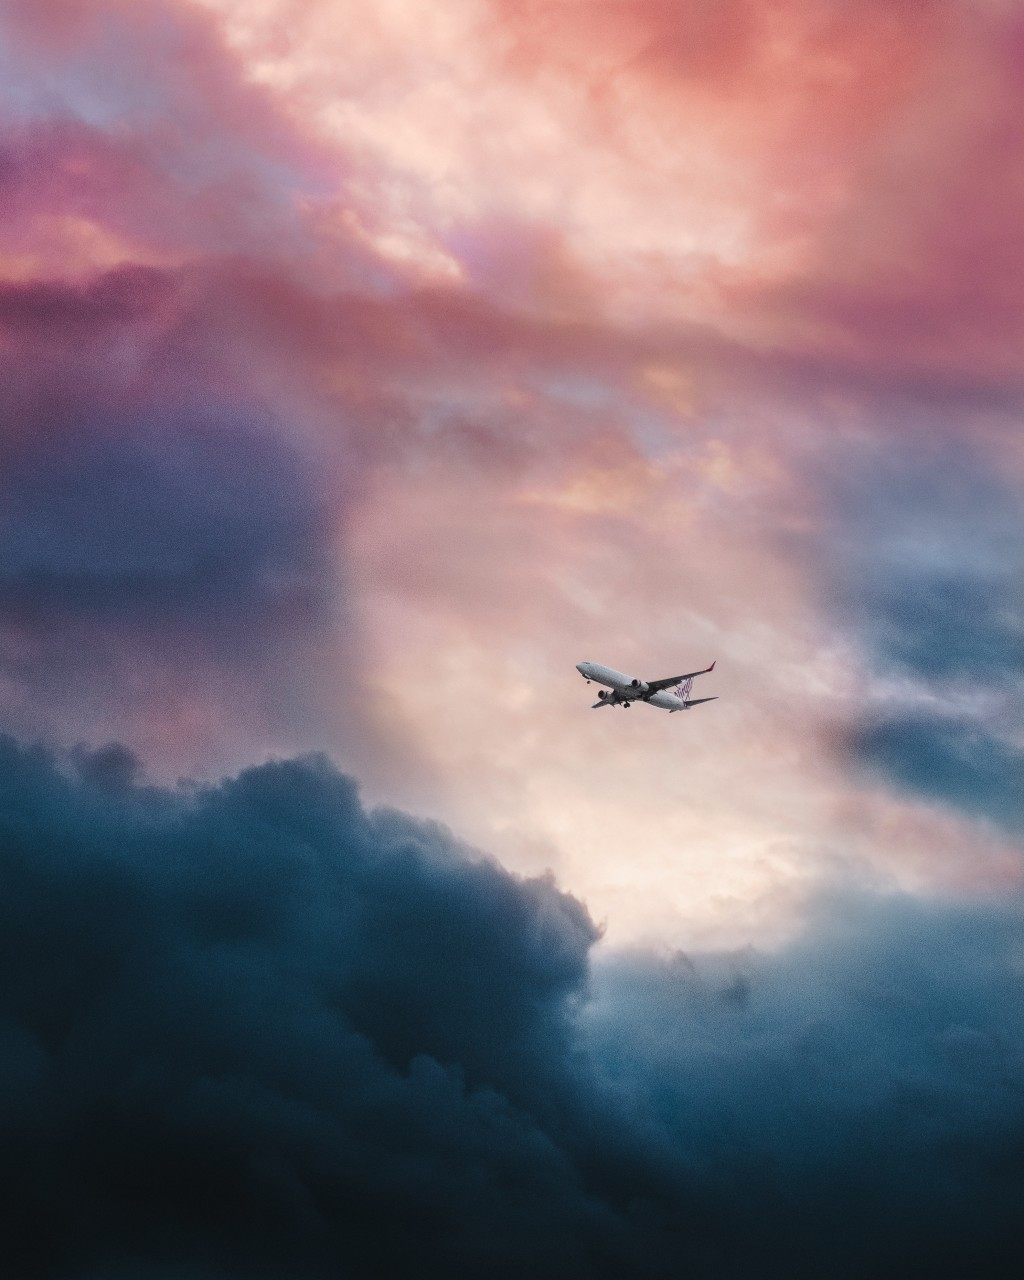 plane, sky, dark clouds